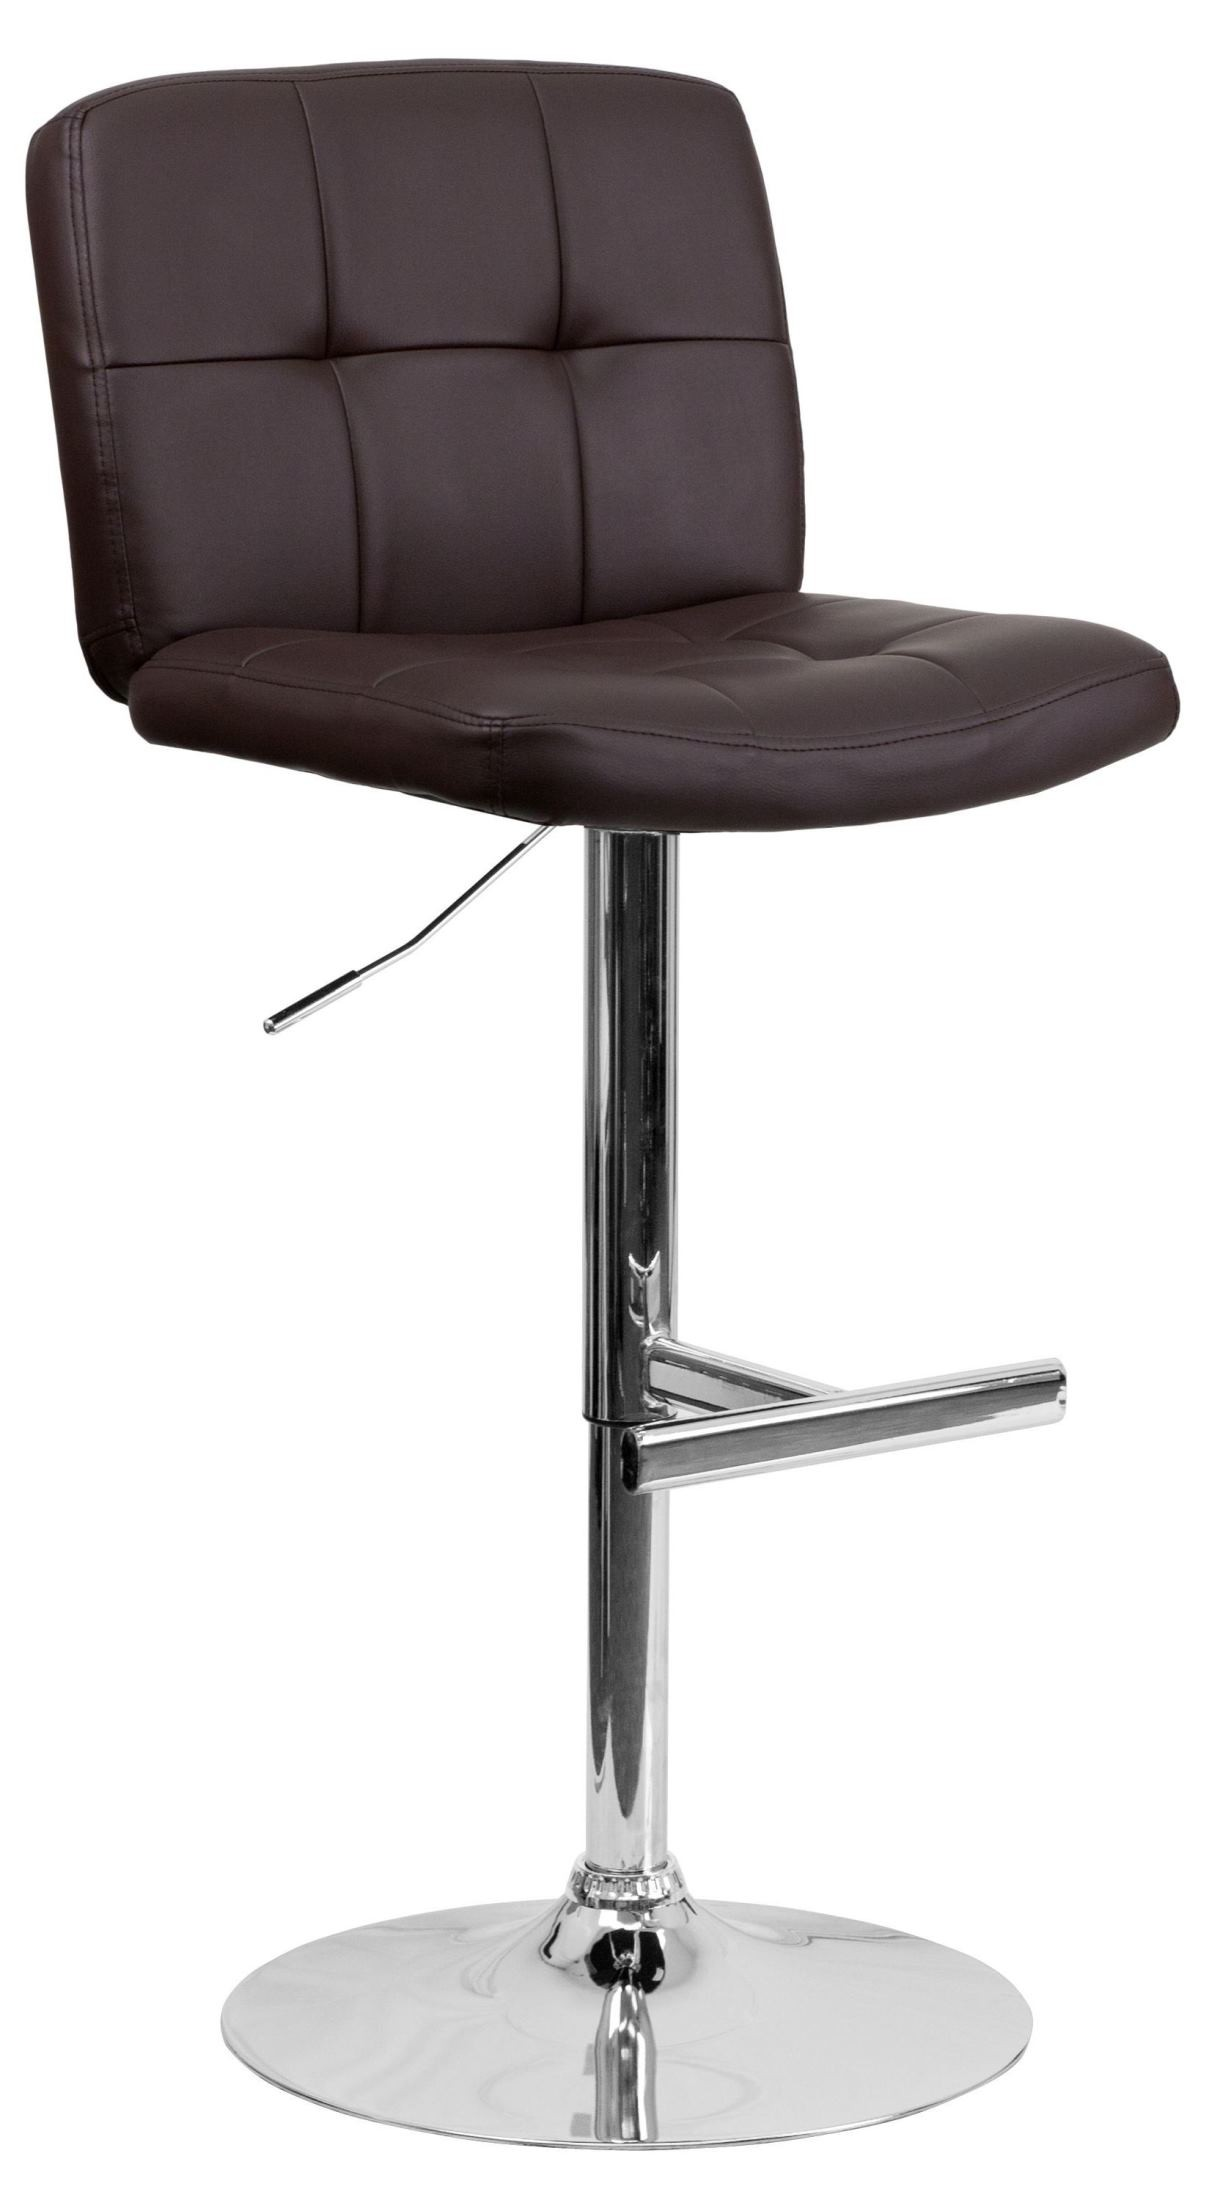 Brown Adjustable Bar Stool 829 Tufted Brown Vinyl Adjustable Height Bar Stool From